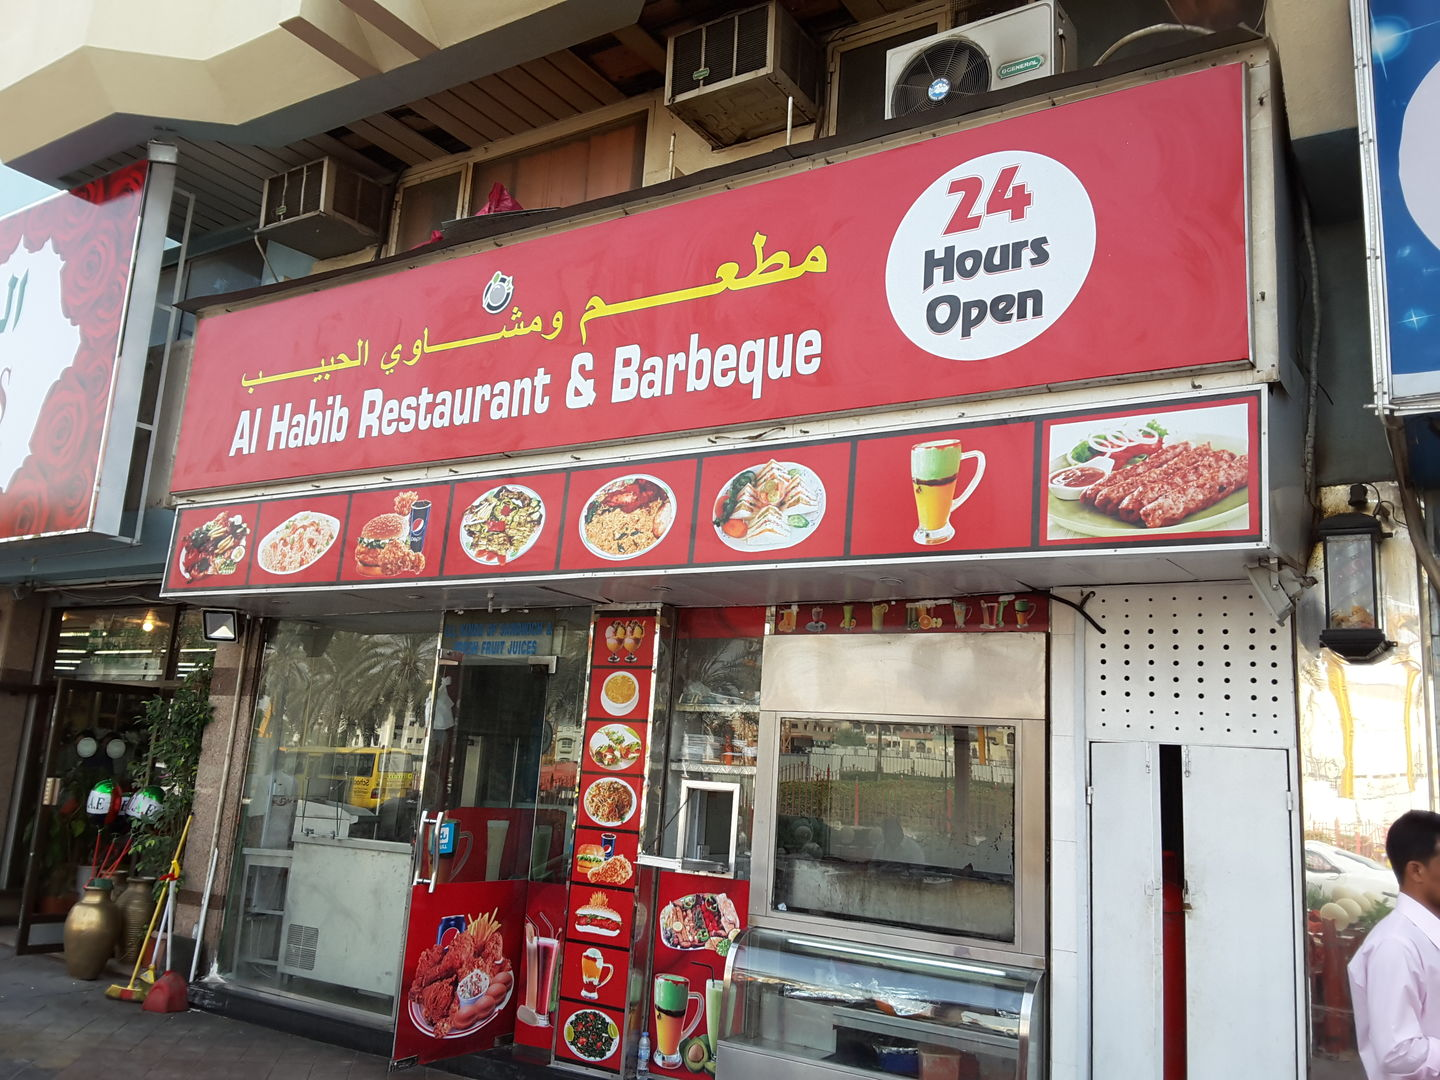 HiDubai-business-al-habib-restaurant-barbecue-food-beverage-restaurants-bars-al-muteena-dubai-2